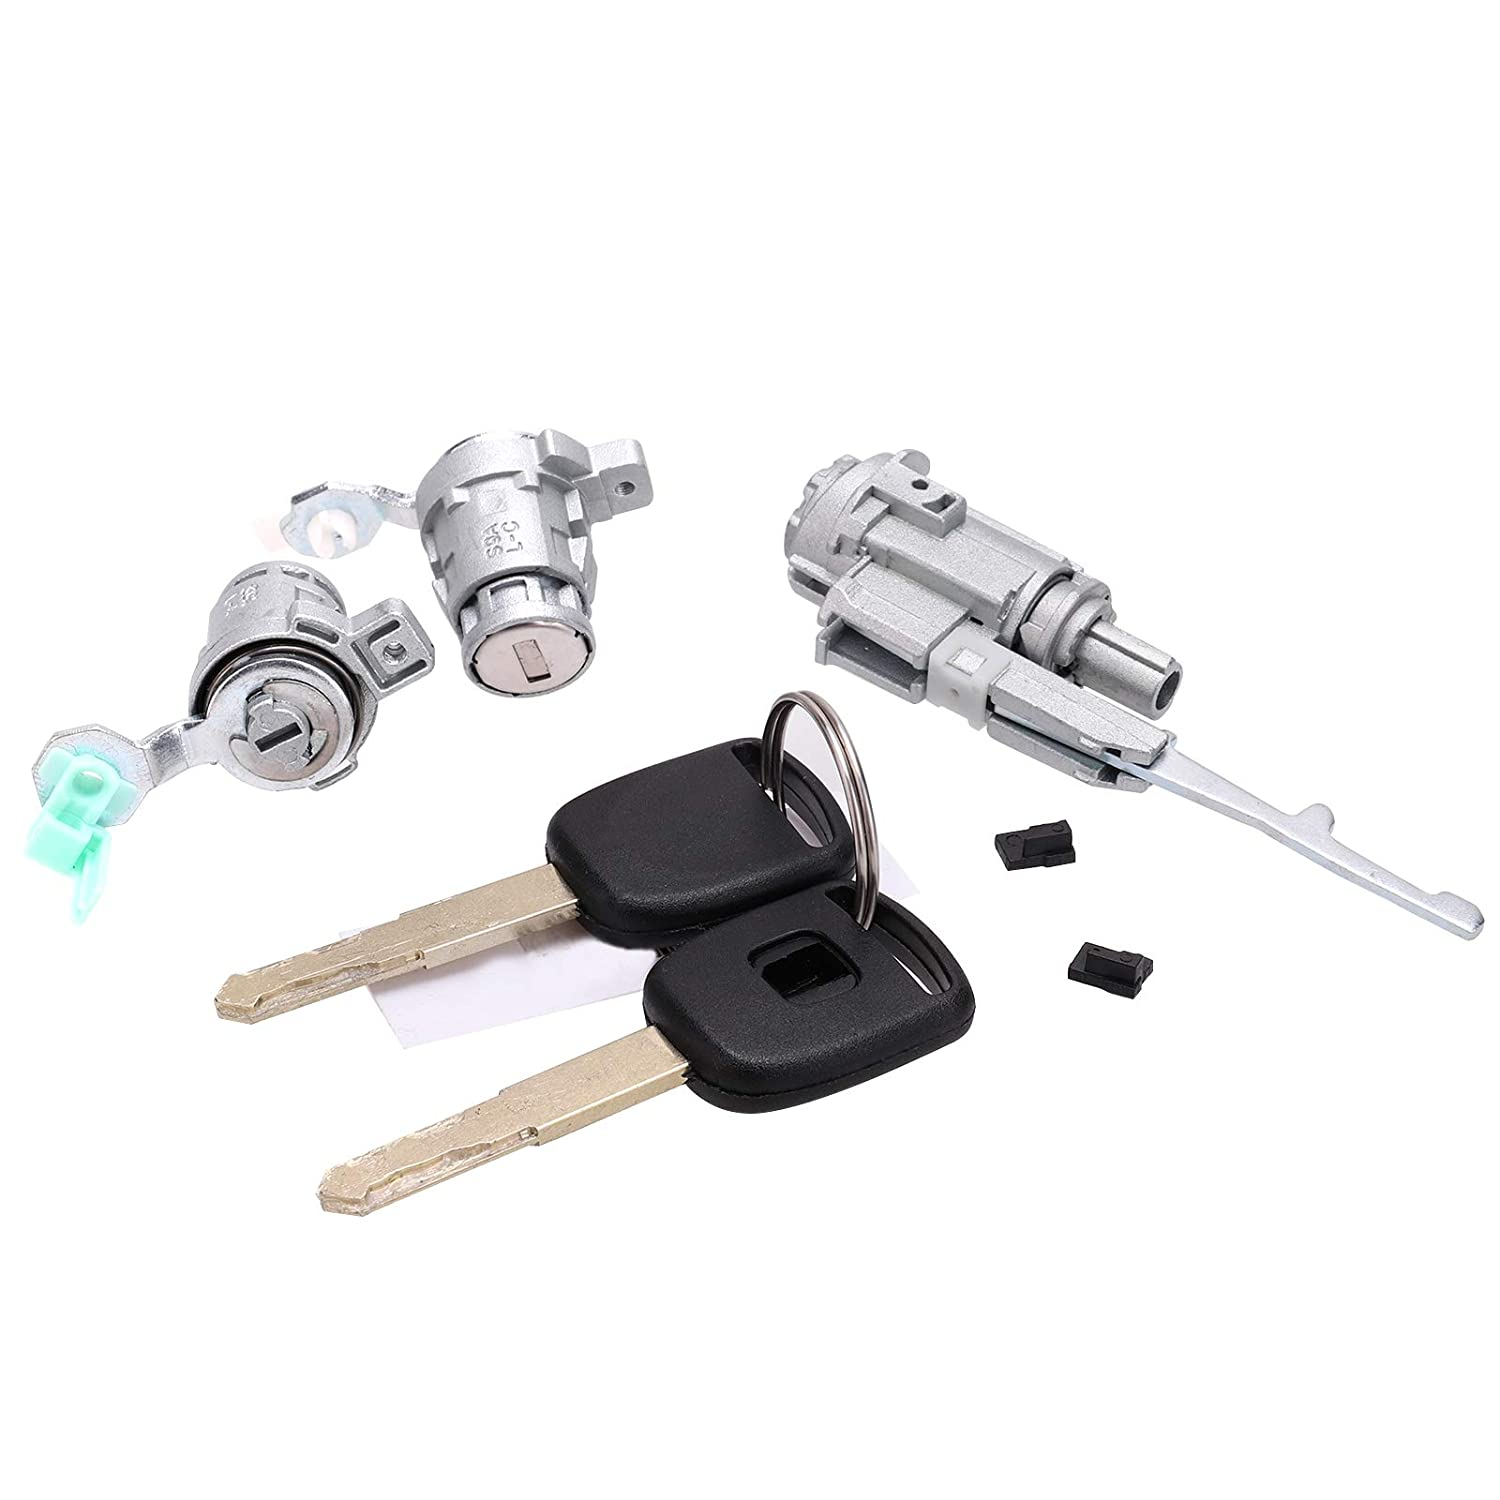 Ignition Switch /& 2 Door Lock Cylinder W// 2 Keys with Chip Fit For Honda 2003-2005 Civic 2002-2006 CR-V 2003-2011 Element 2004 2005 S2000